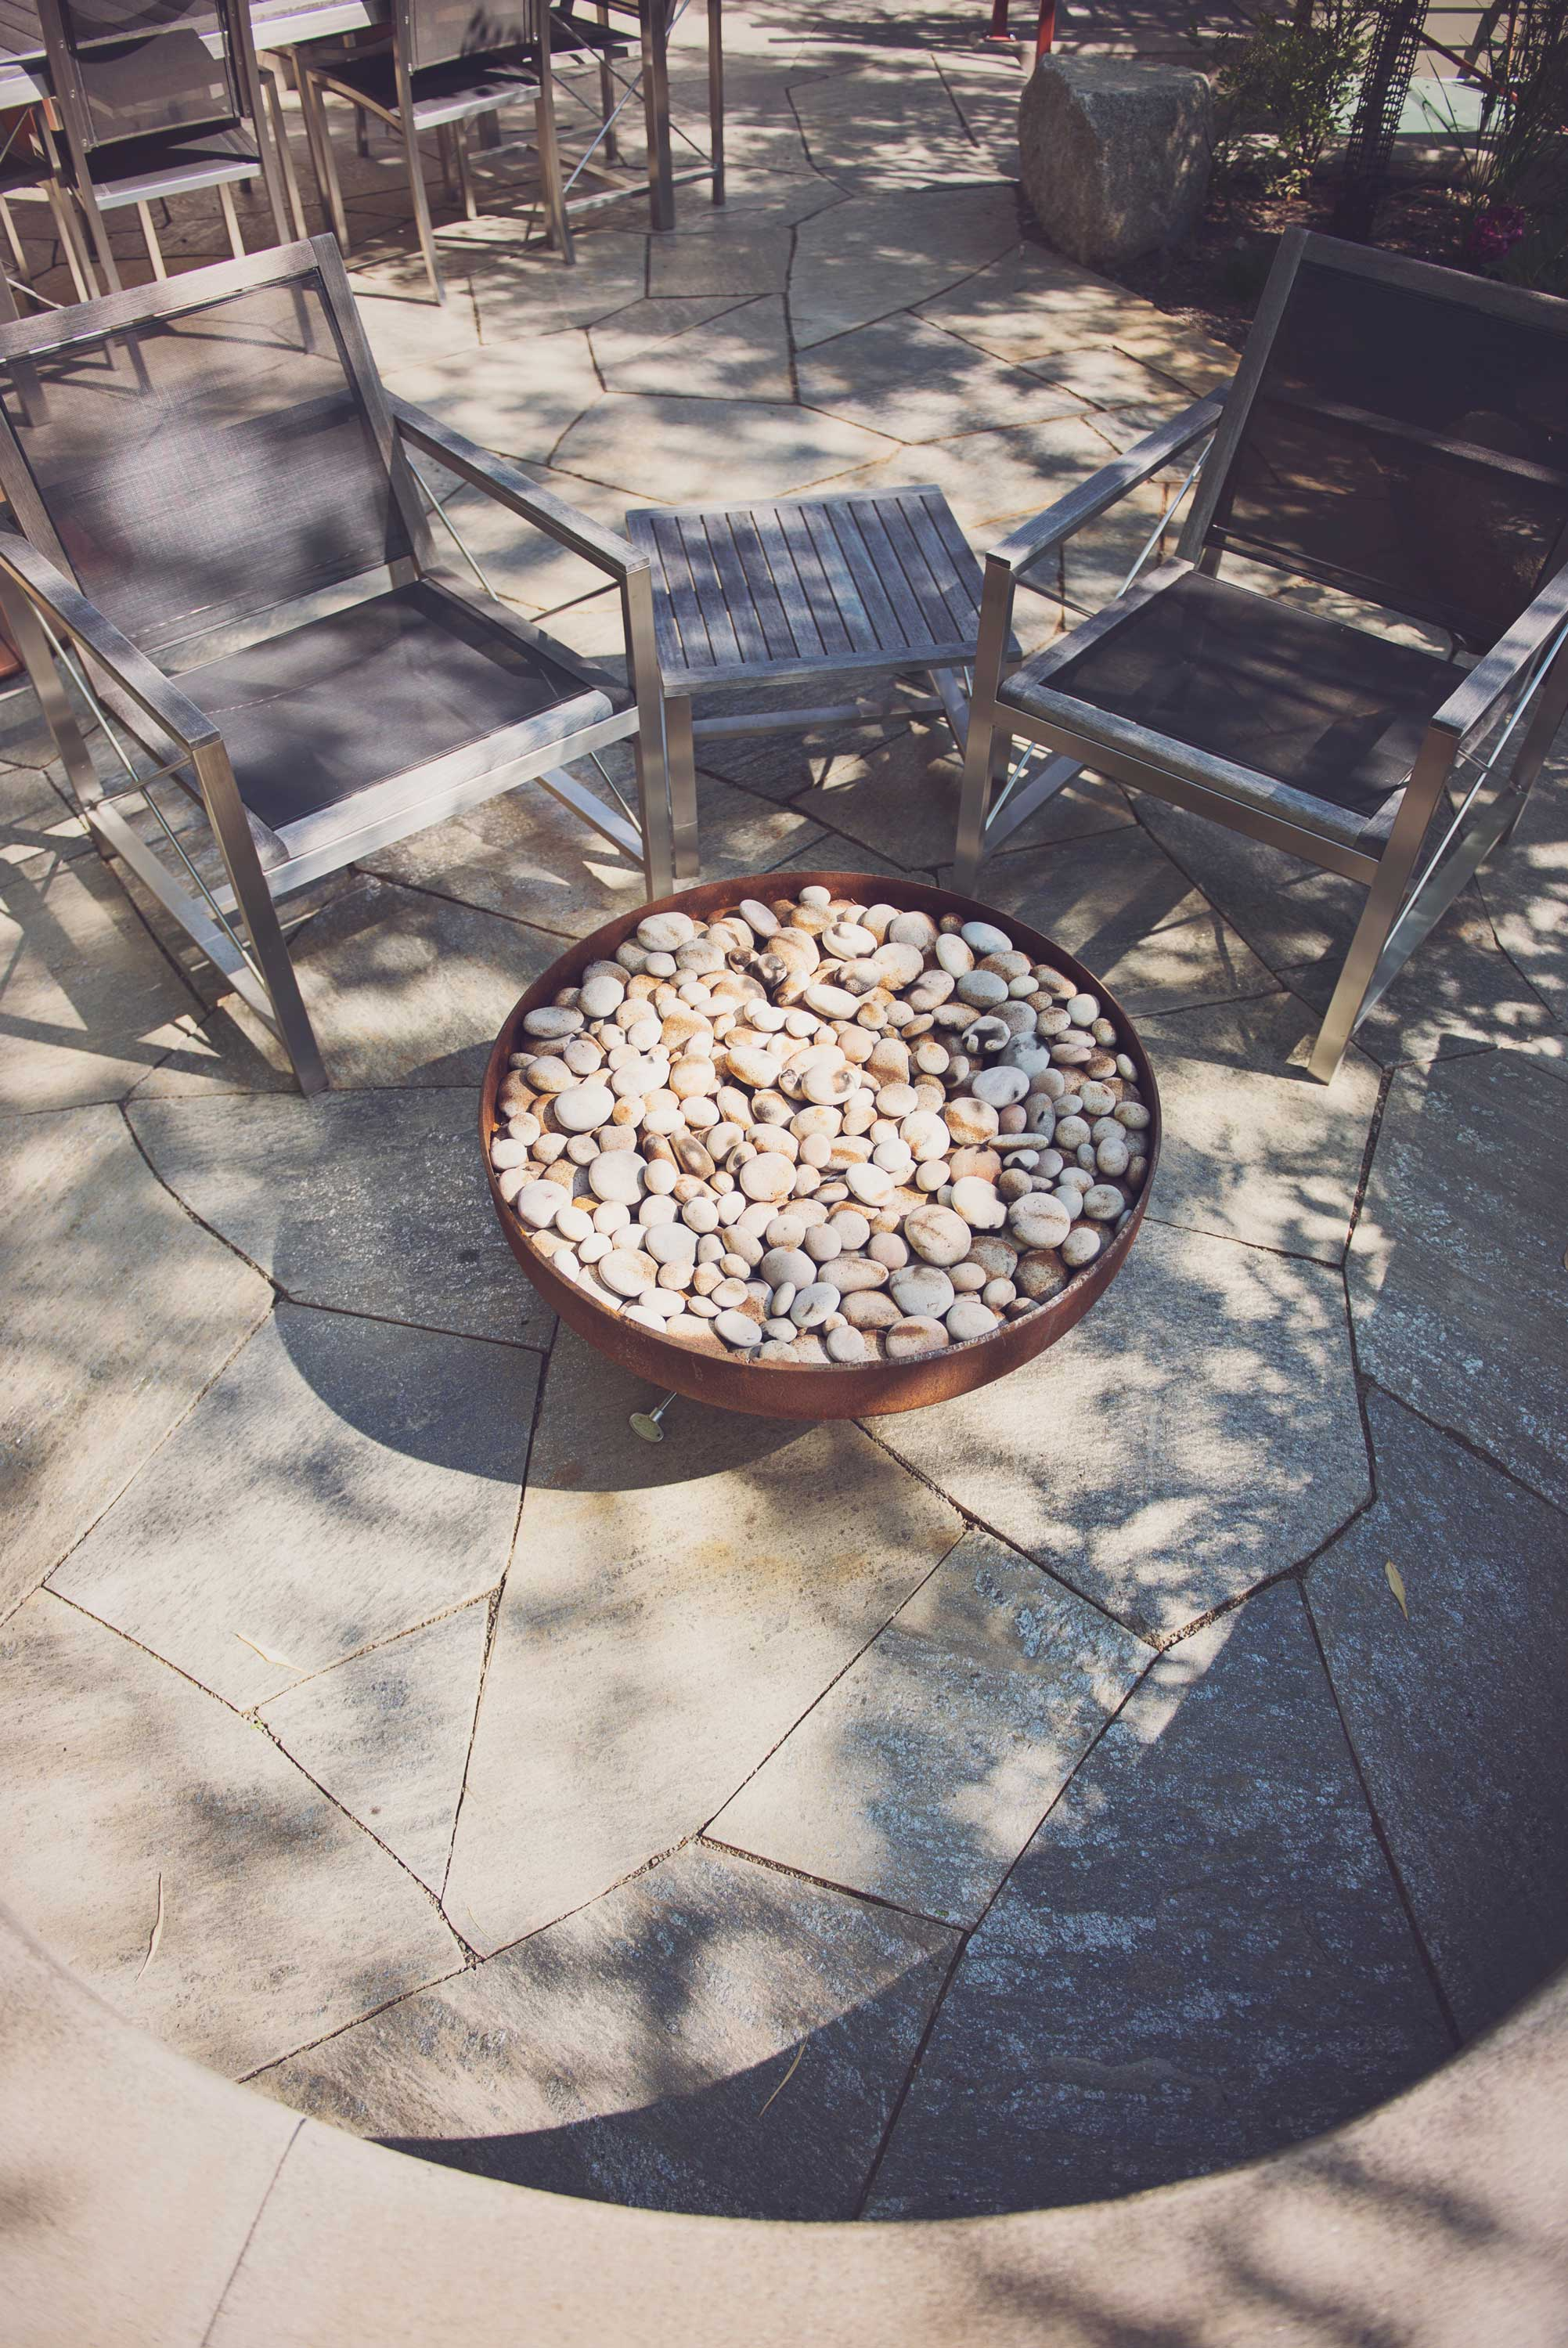 Modern Steel Fire Table with Round Fire Stones and Flagstone Patio Design.jpg